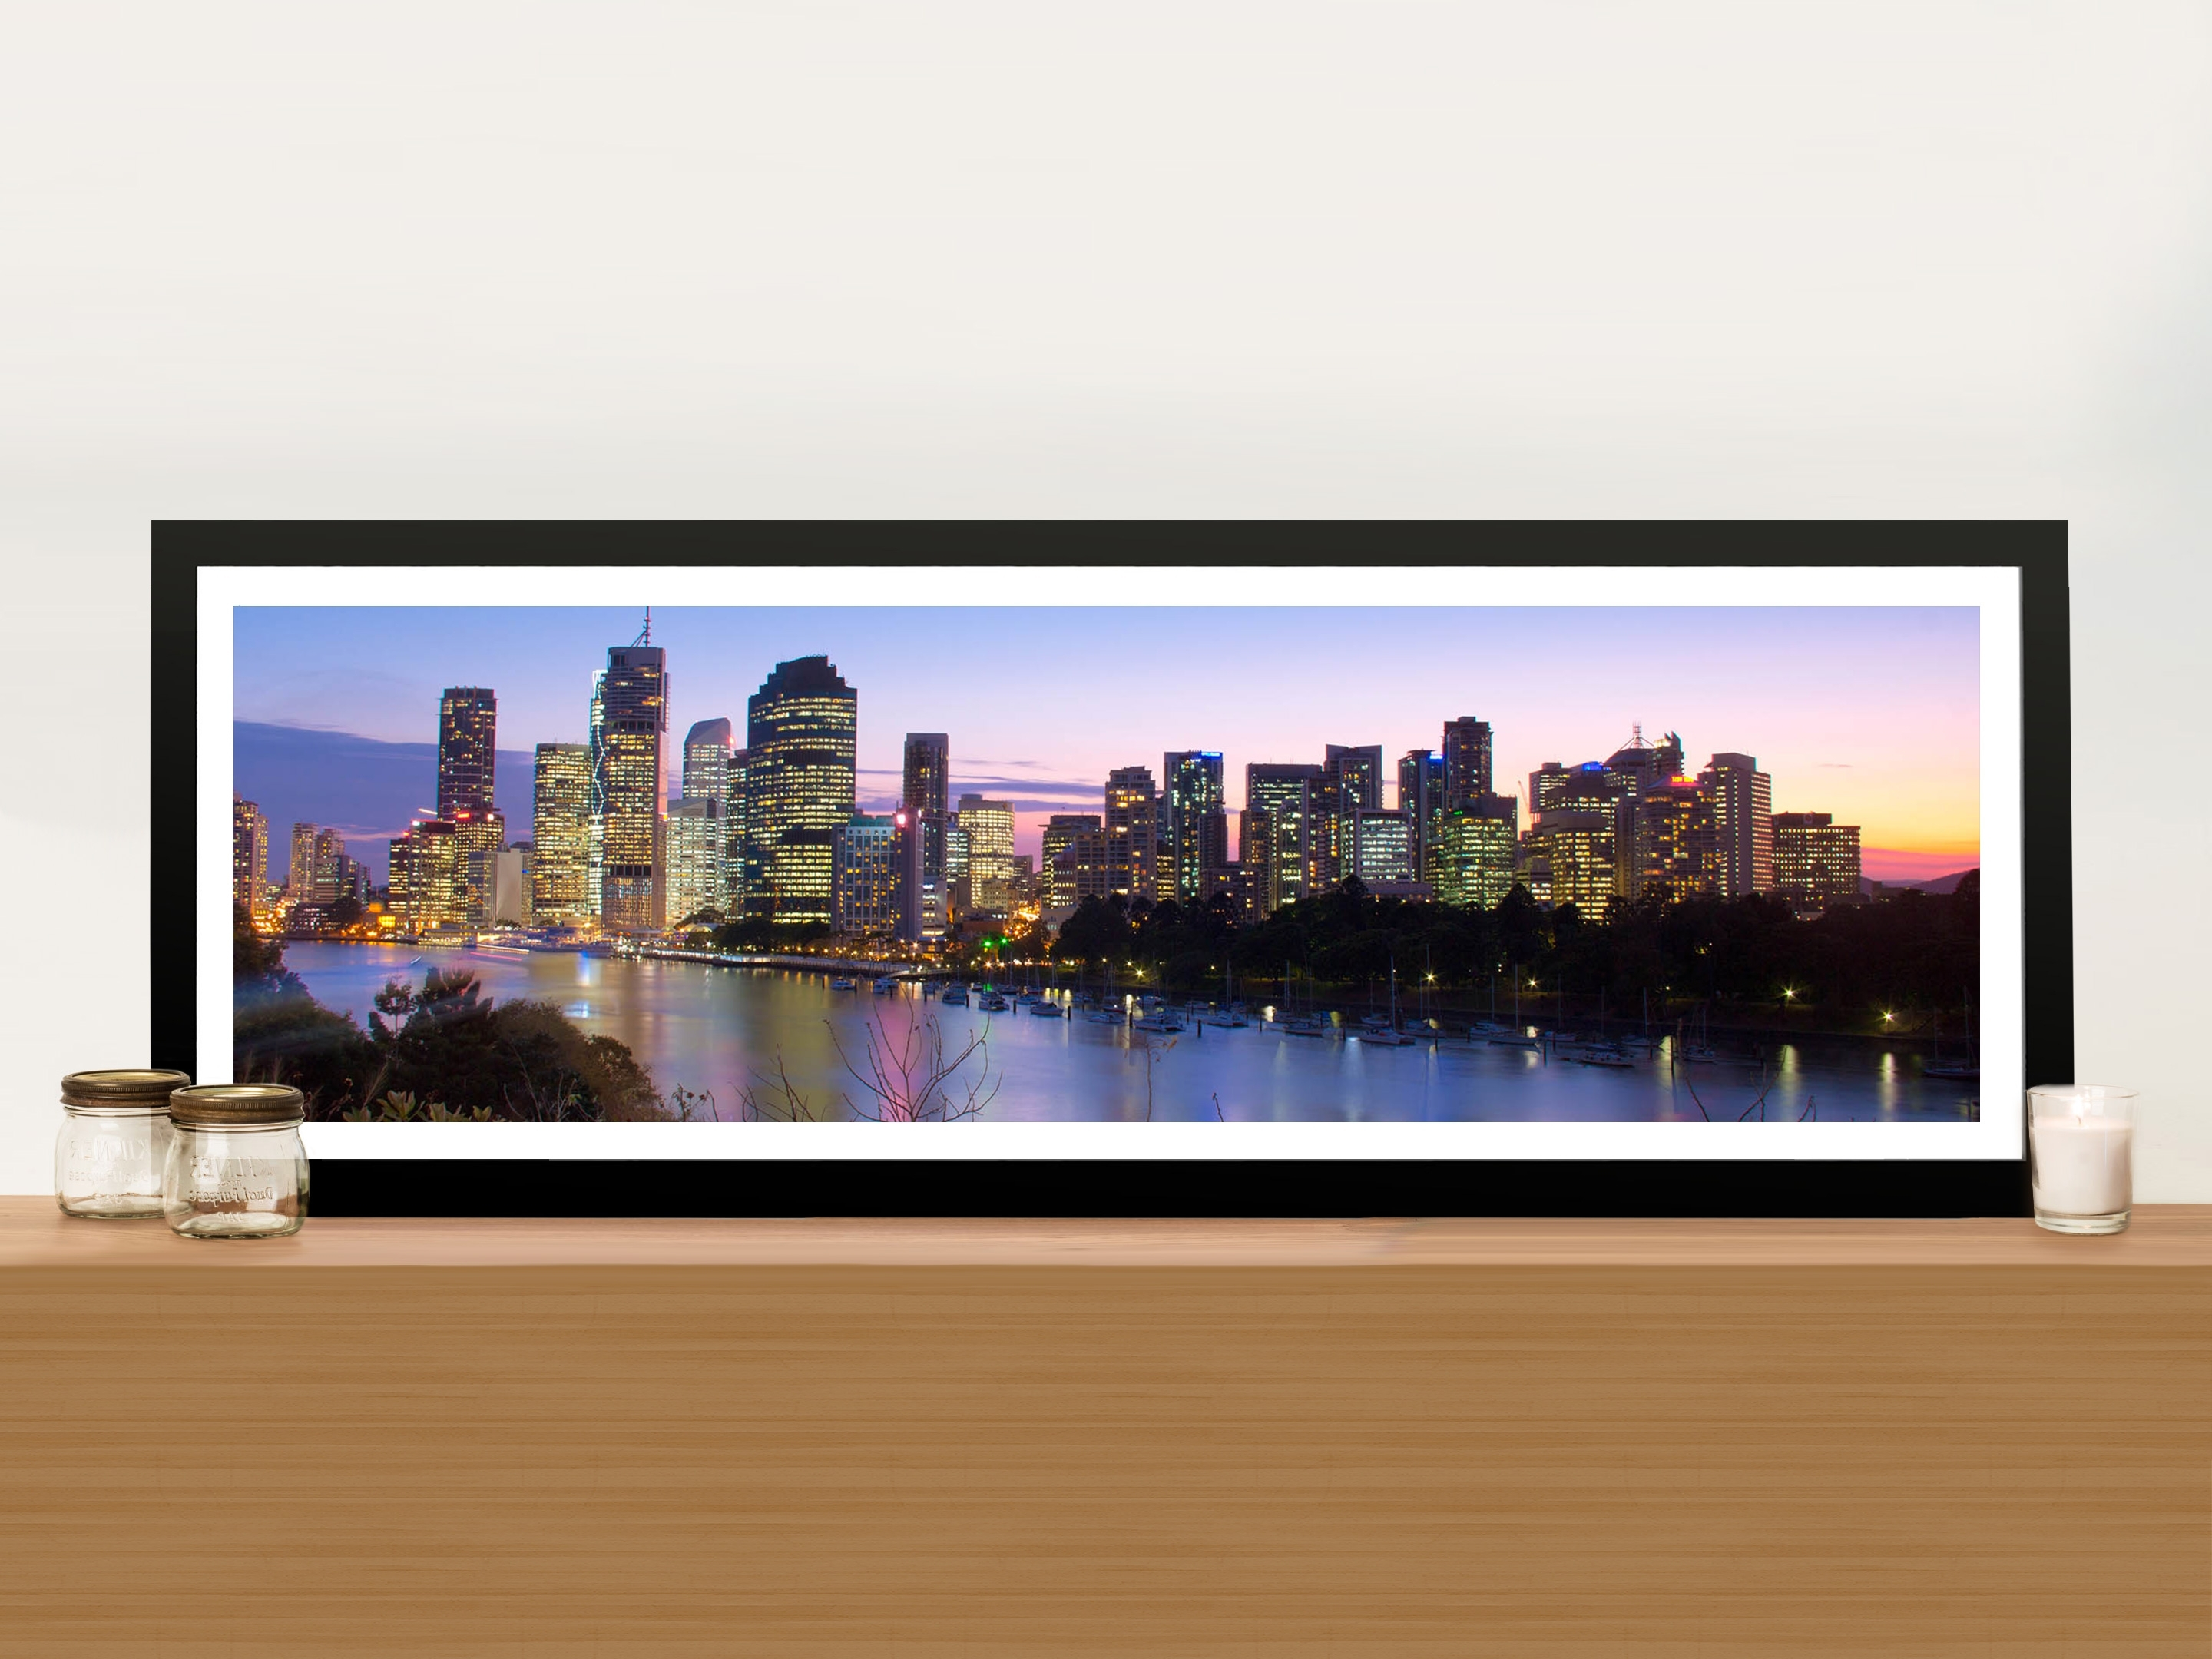 Best And Newest Panoramic Wall Art Pertaining To Brisbane Skyline In Panoramic View Picture Art Print On Canvas (Gallery 6 of 15)